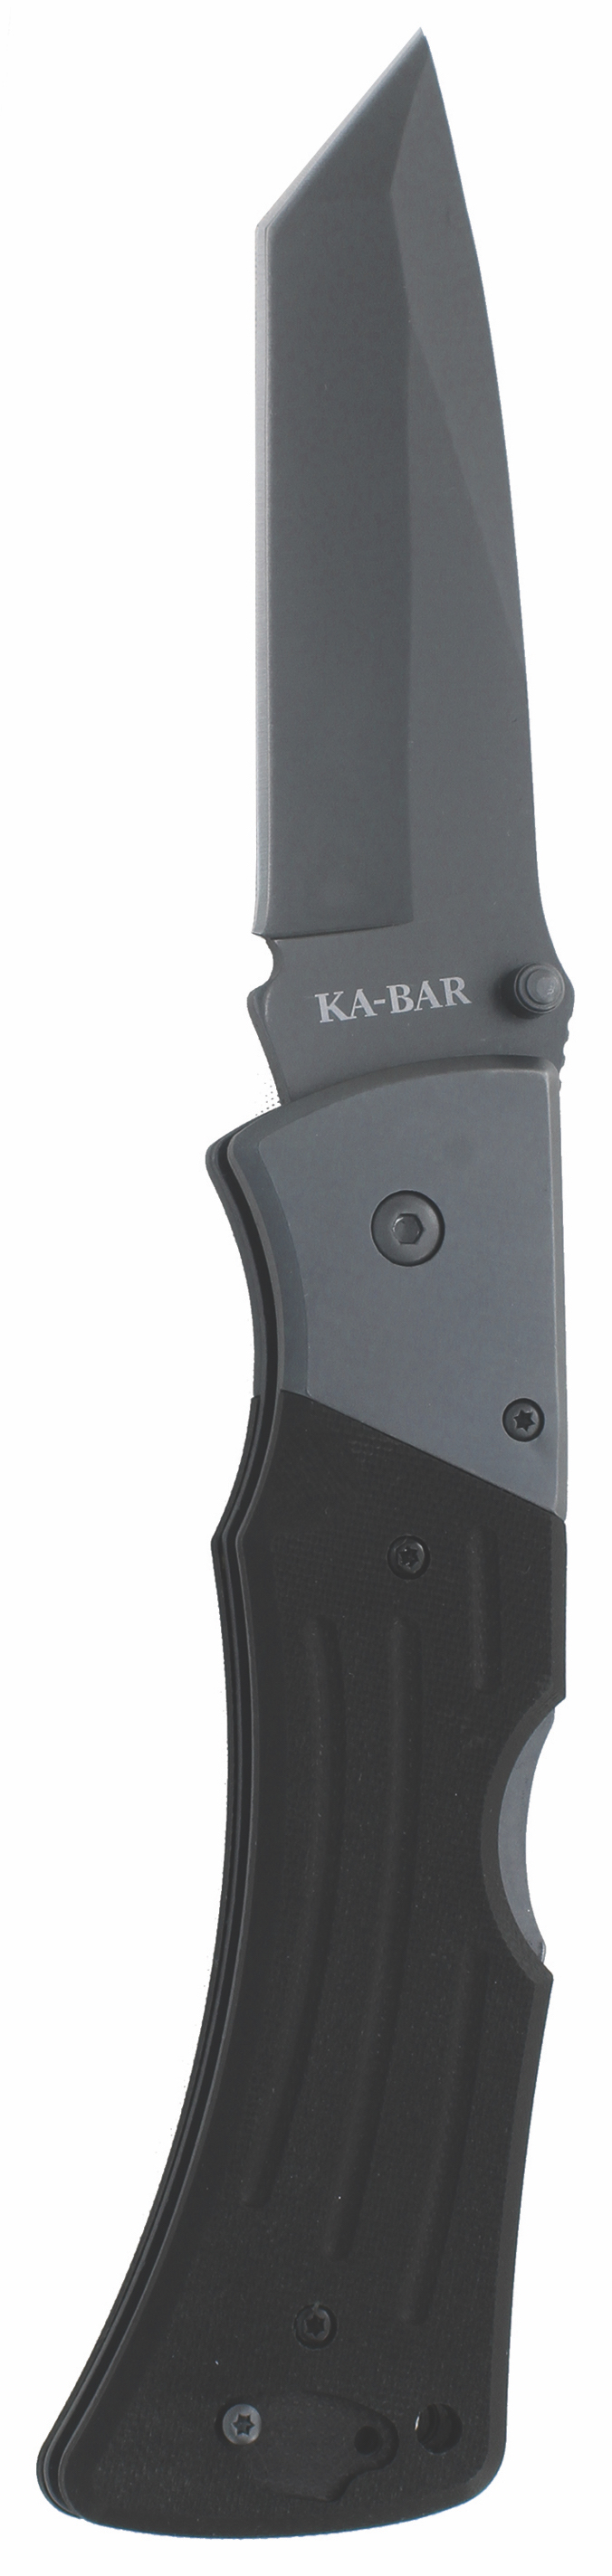 3064 - KA-BAR G10 MULE TANTO FOLDER II-BLACK, STR EDGE